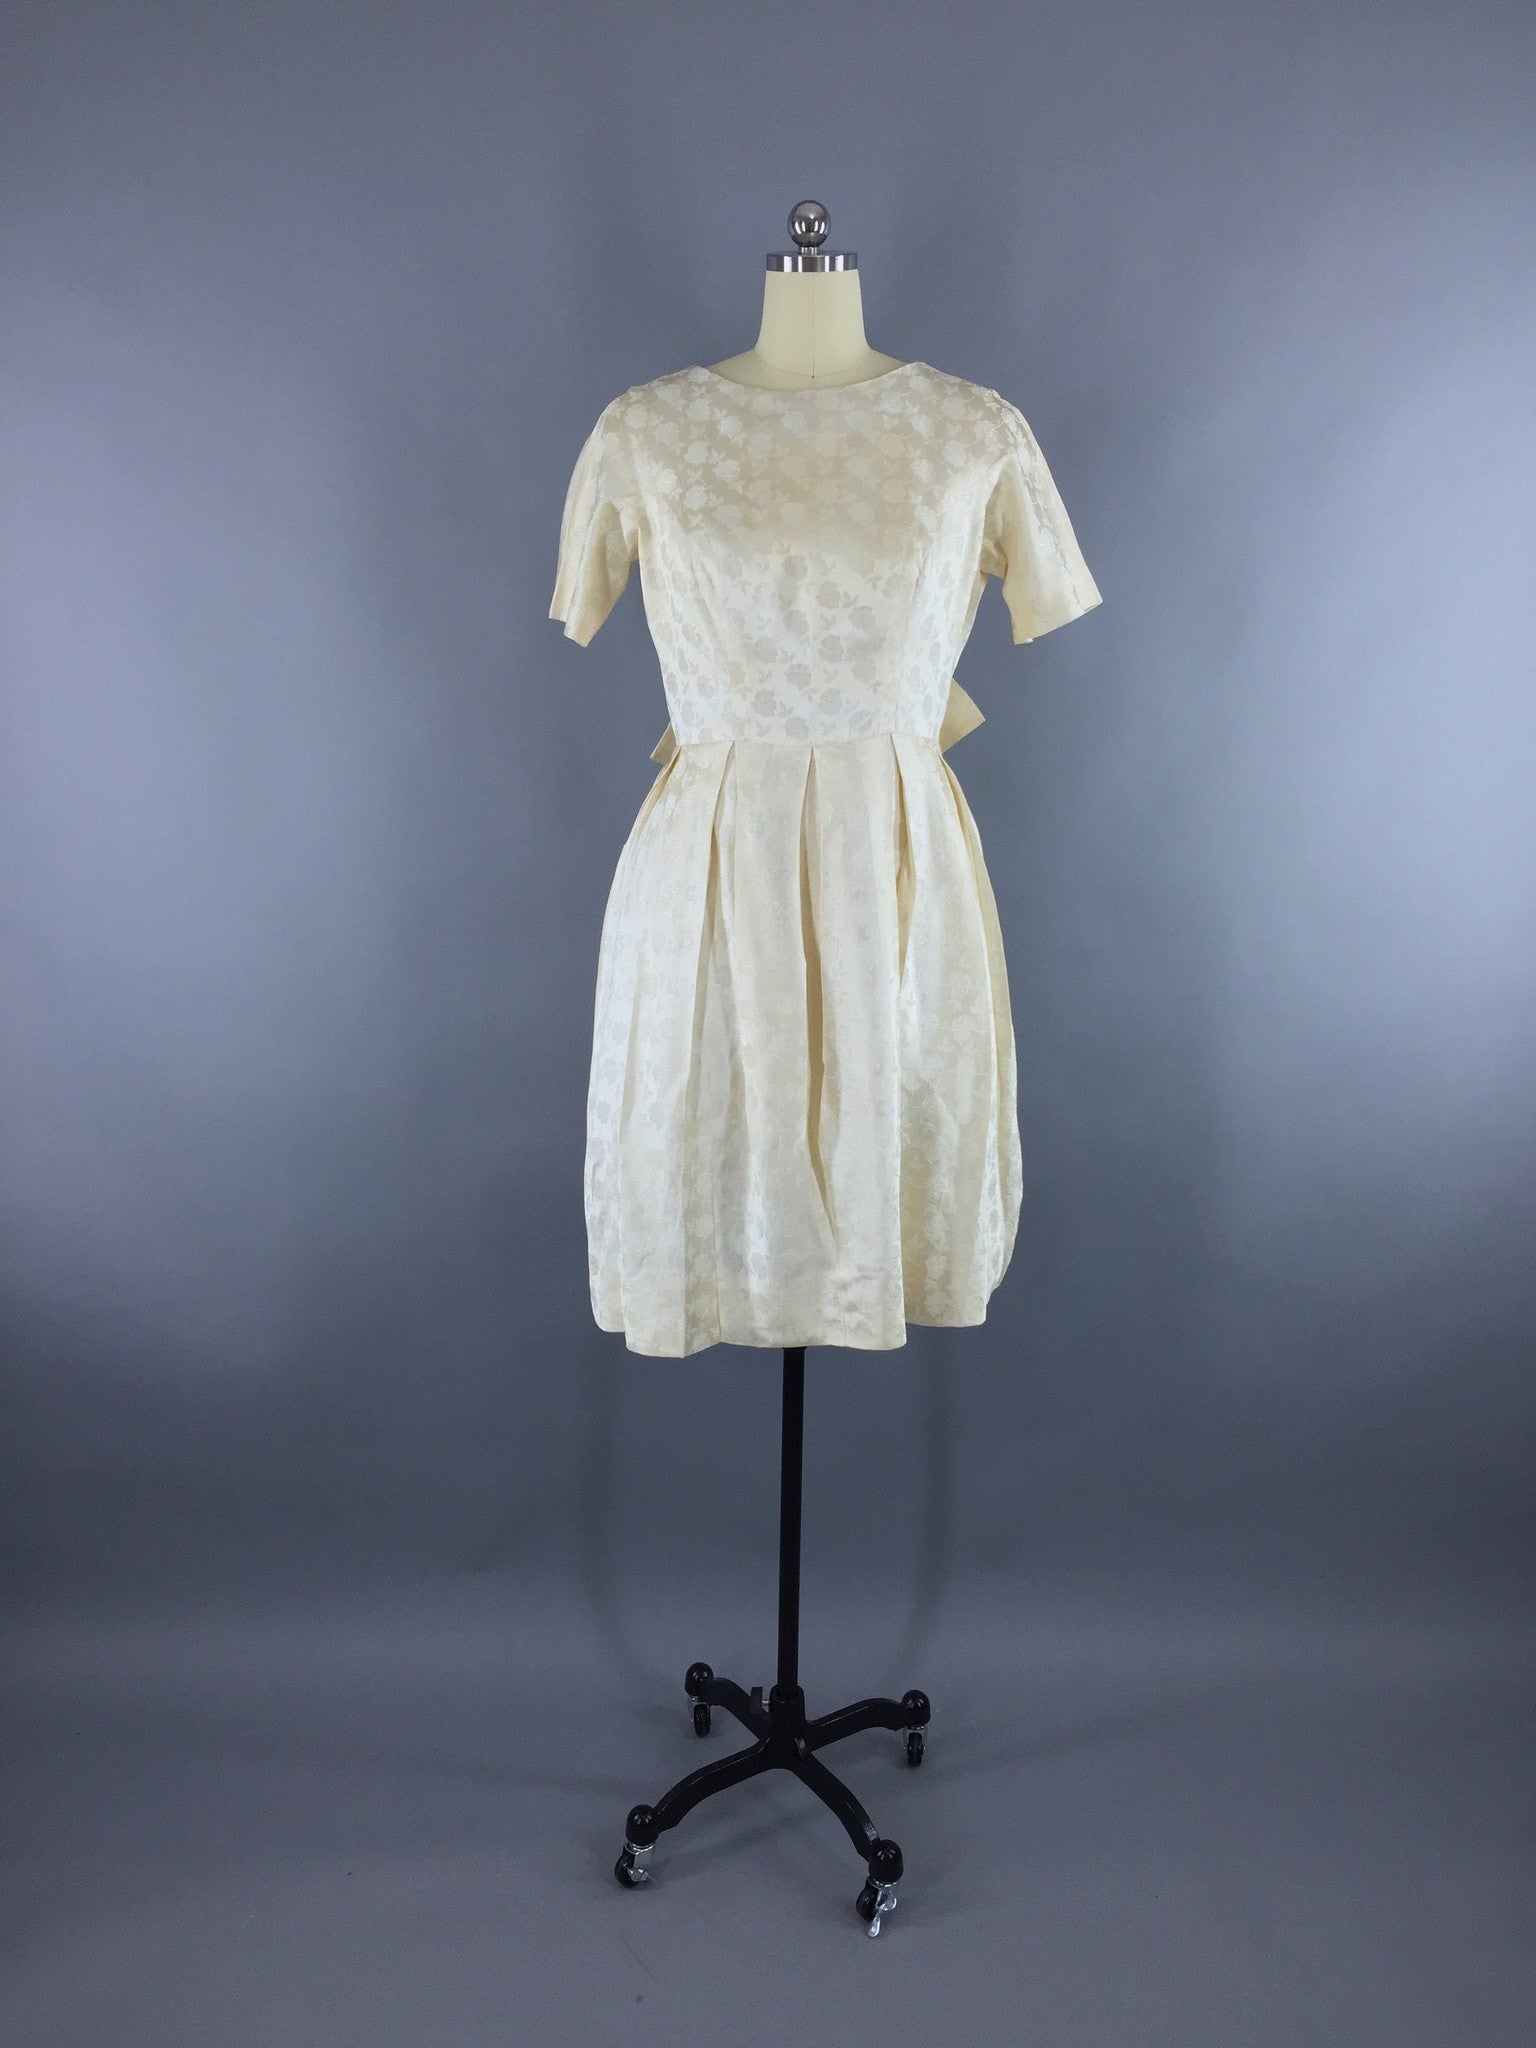 1950s Vintage Ivory Satin Damask Party Dress Dress ThisBlueBird - Sale